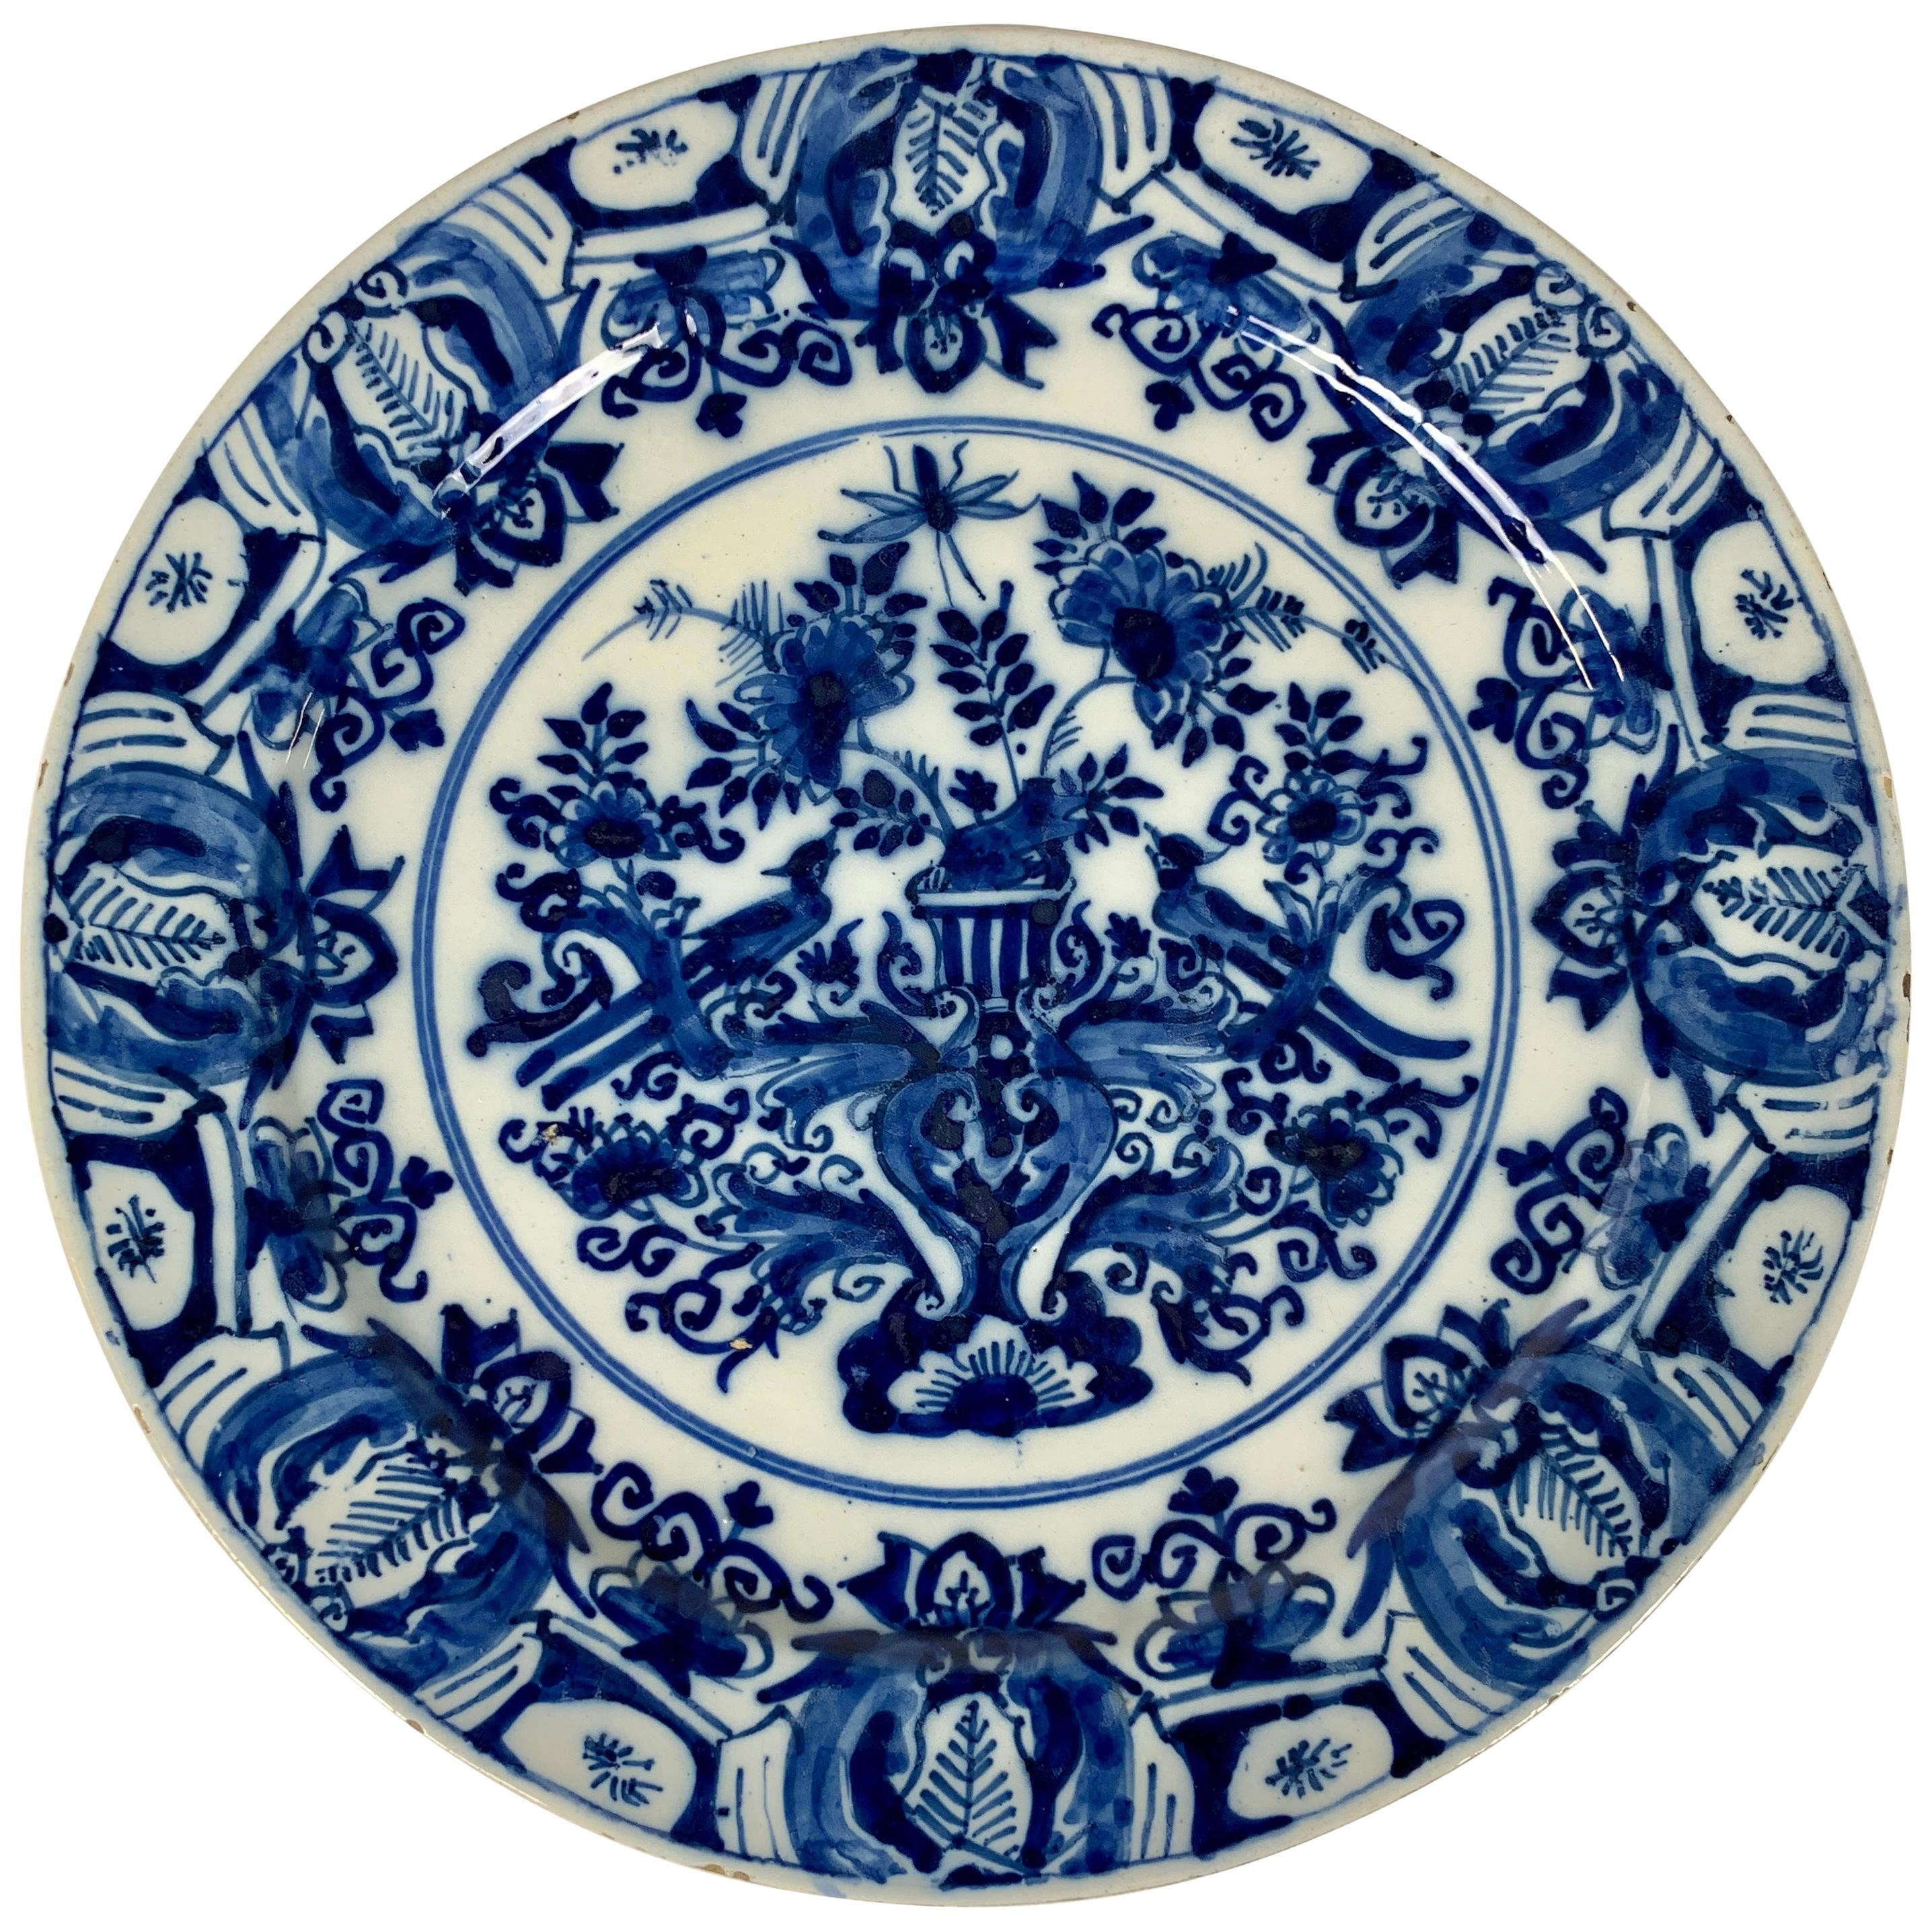 Blue and White Dutch Delft Charger Hand-Painted, Circa 1770